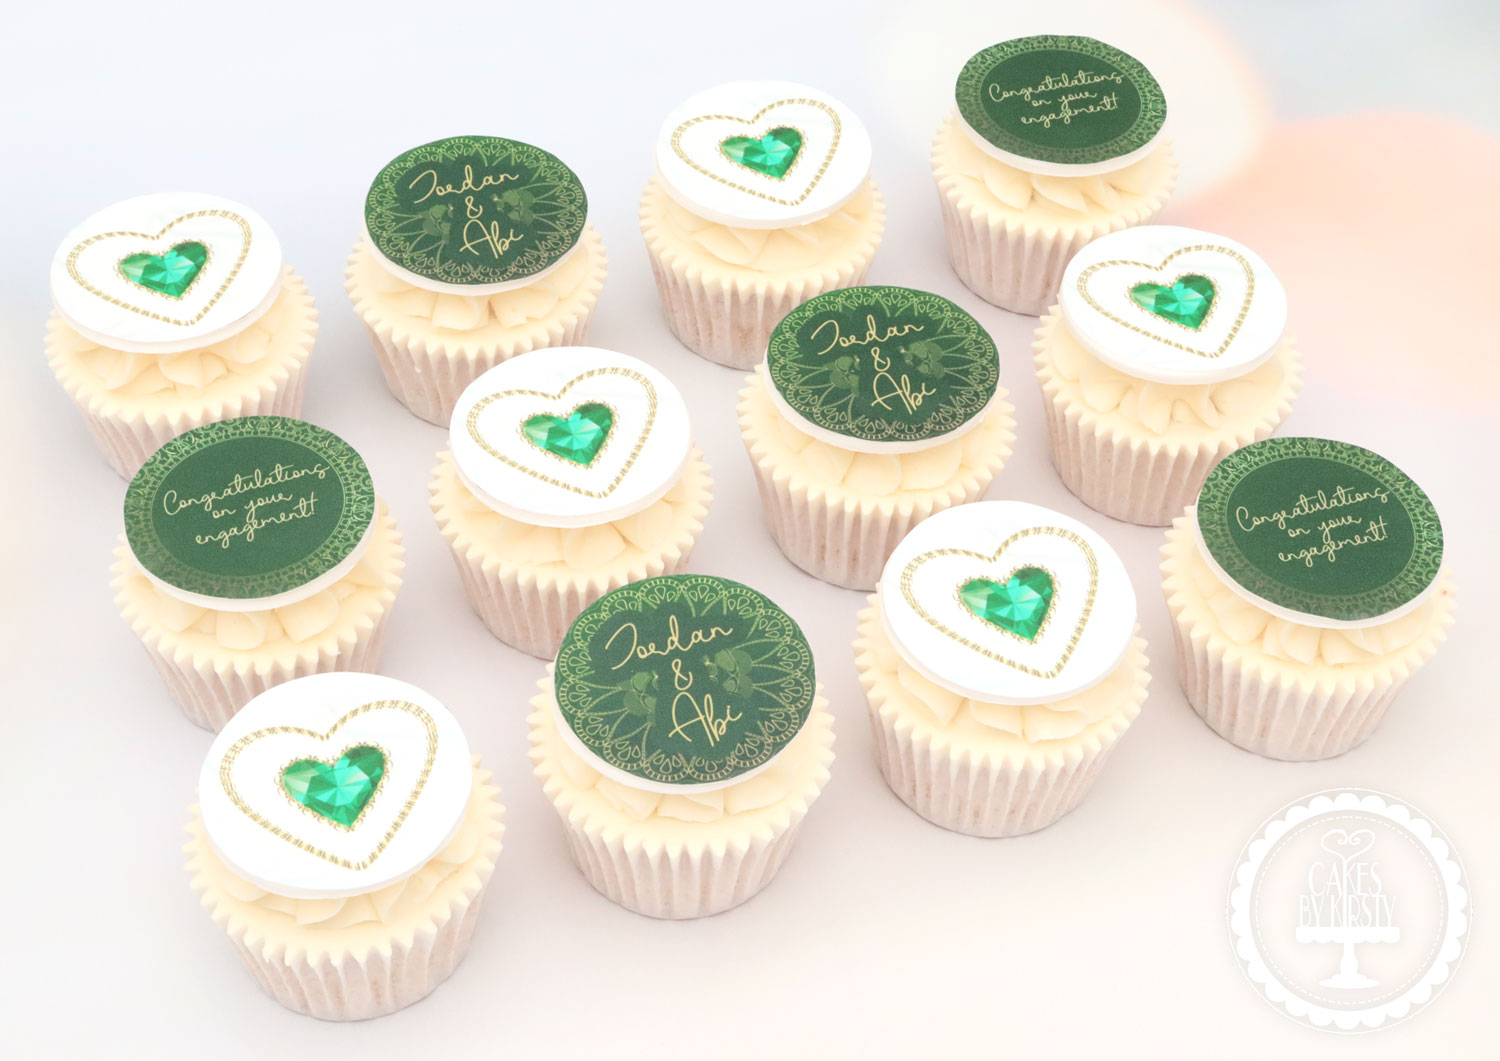 20200920 - Emerald Engagement Cupcakes